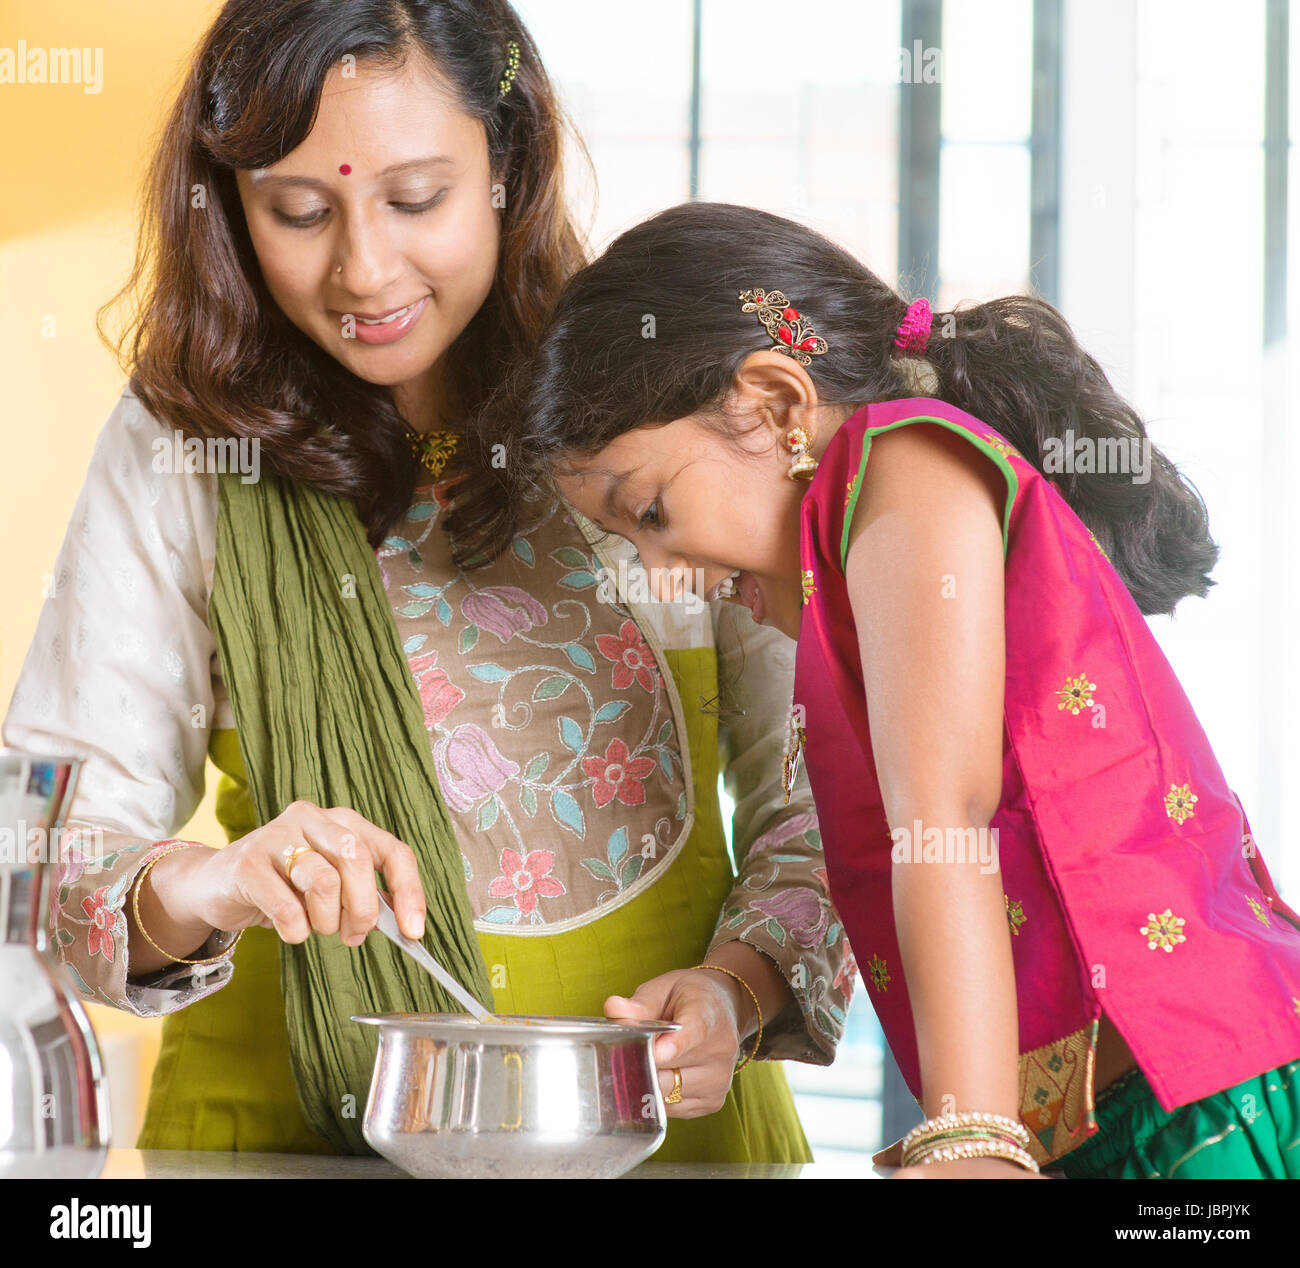 Asian family cooking food together at home indian mother and child asian family cooking food together at home indian mother and child preparing meal in kitchen traditional india people with sari clothing forumfinder Images